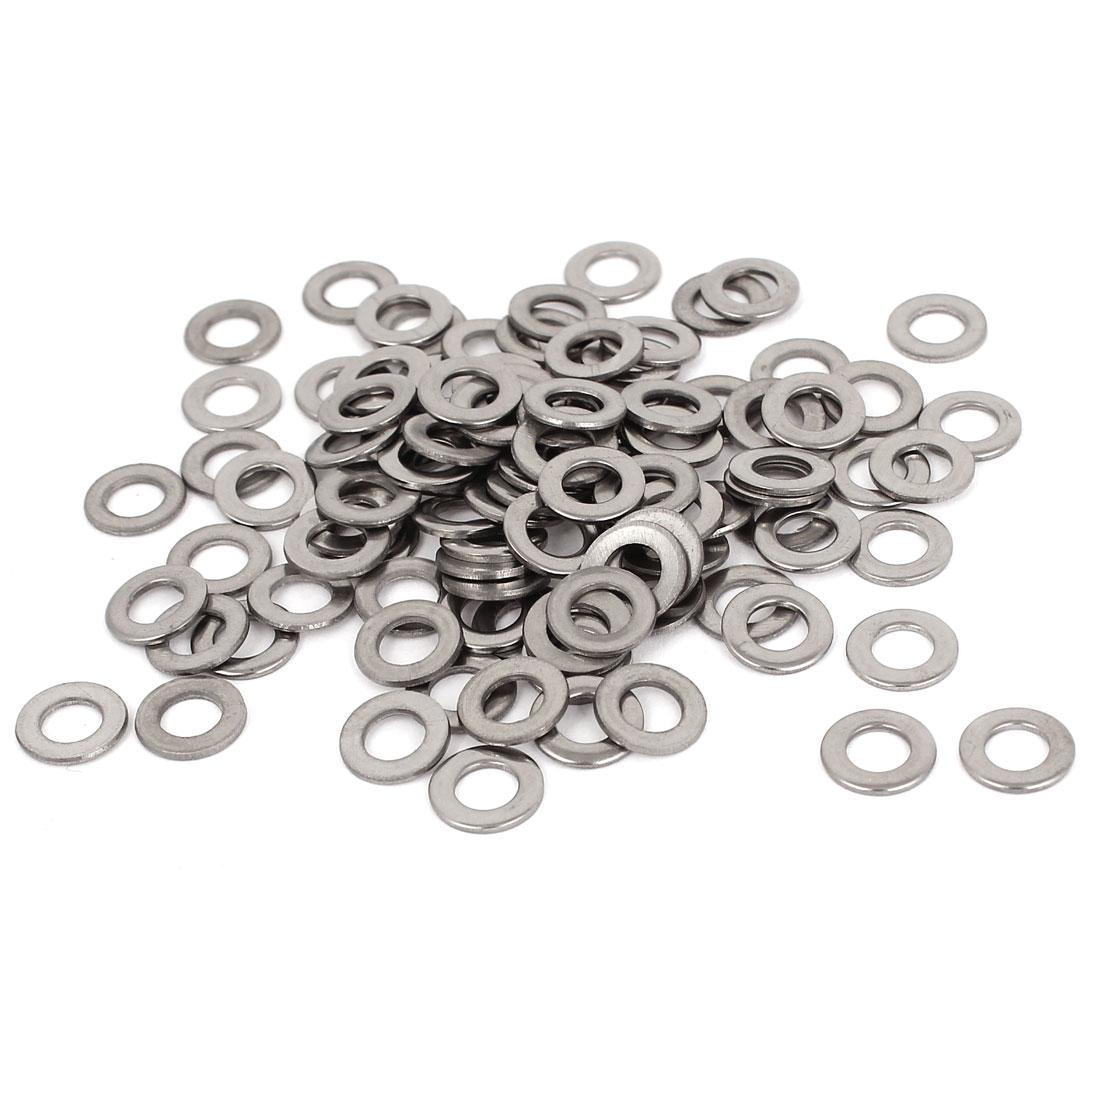 100pcs Silver Tone 304 Stainless Steel Flat Washer #10 for Screws Bolts